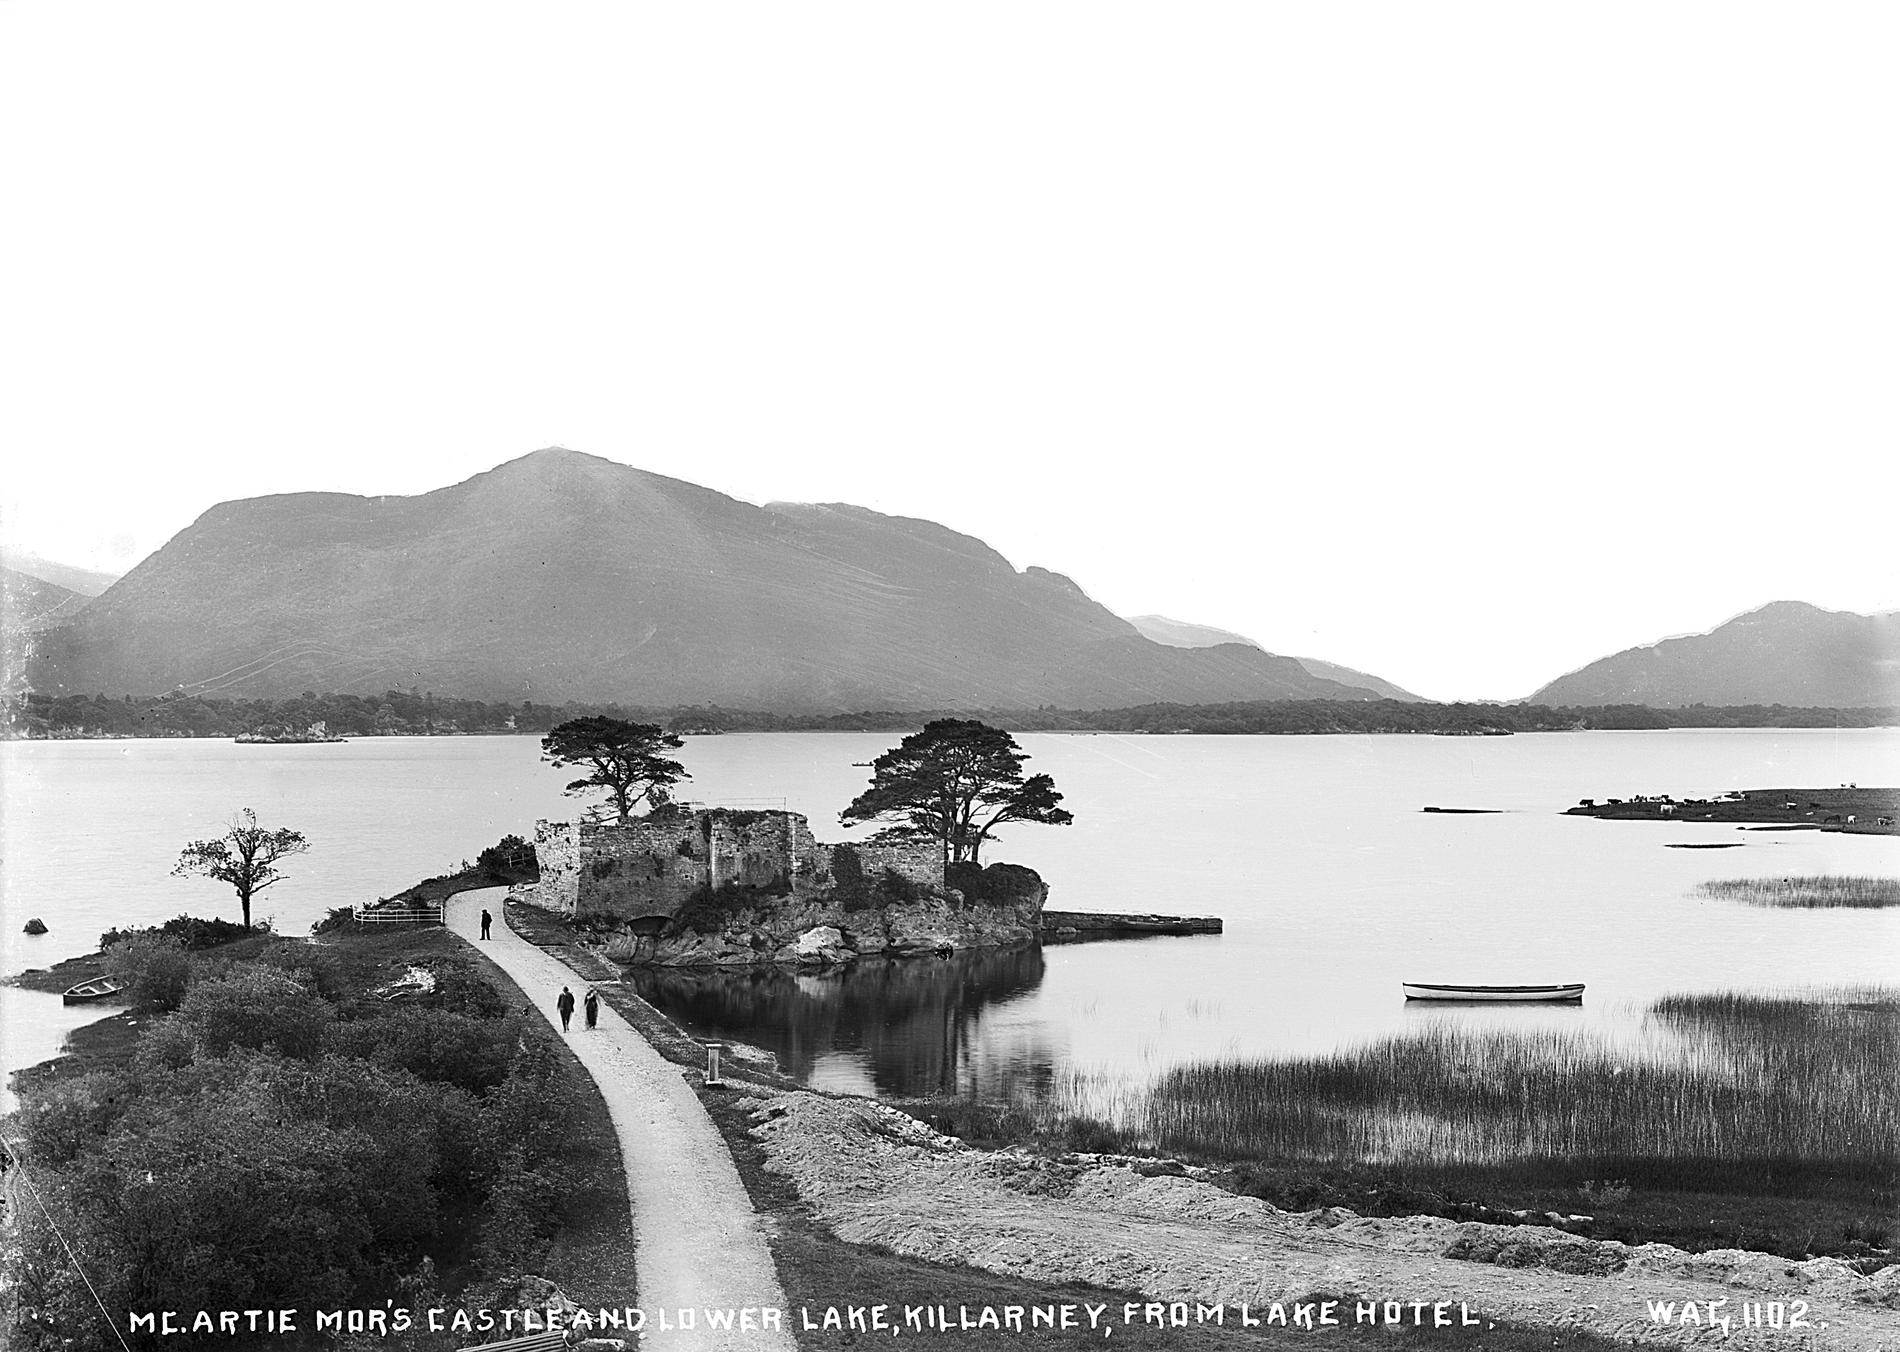 MC.ARTIE MOR'S CASTLE, AND LOWER LAKE, KILLARNEY, FROM LAKE HOTEL (Photograph; glass plate negative)